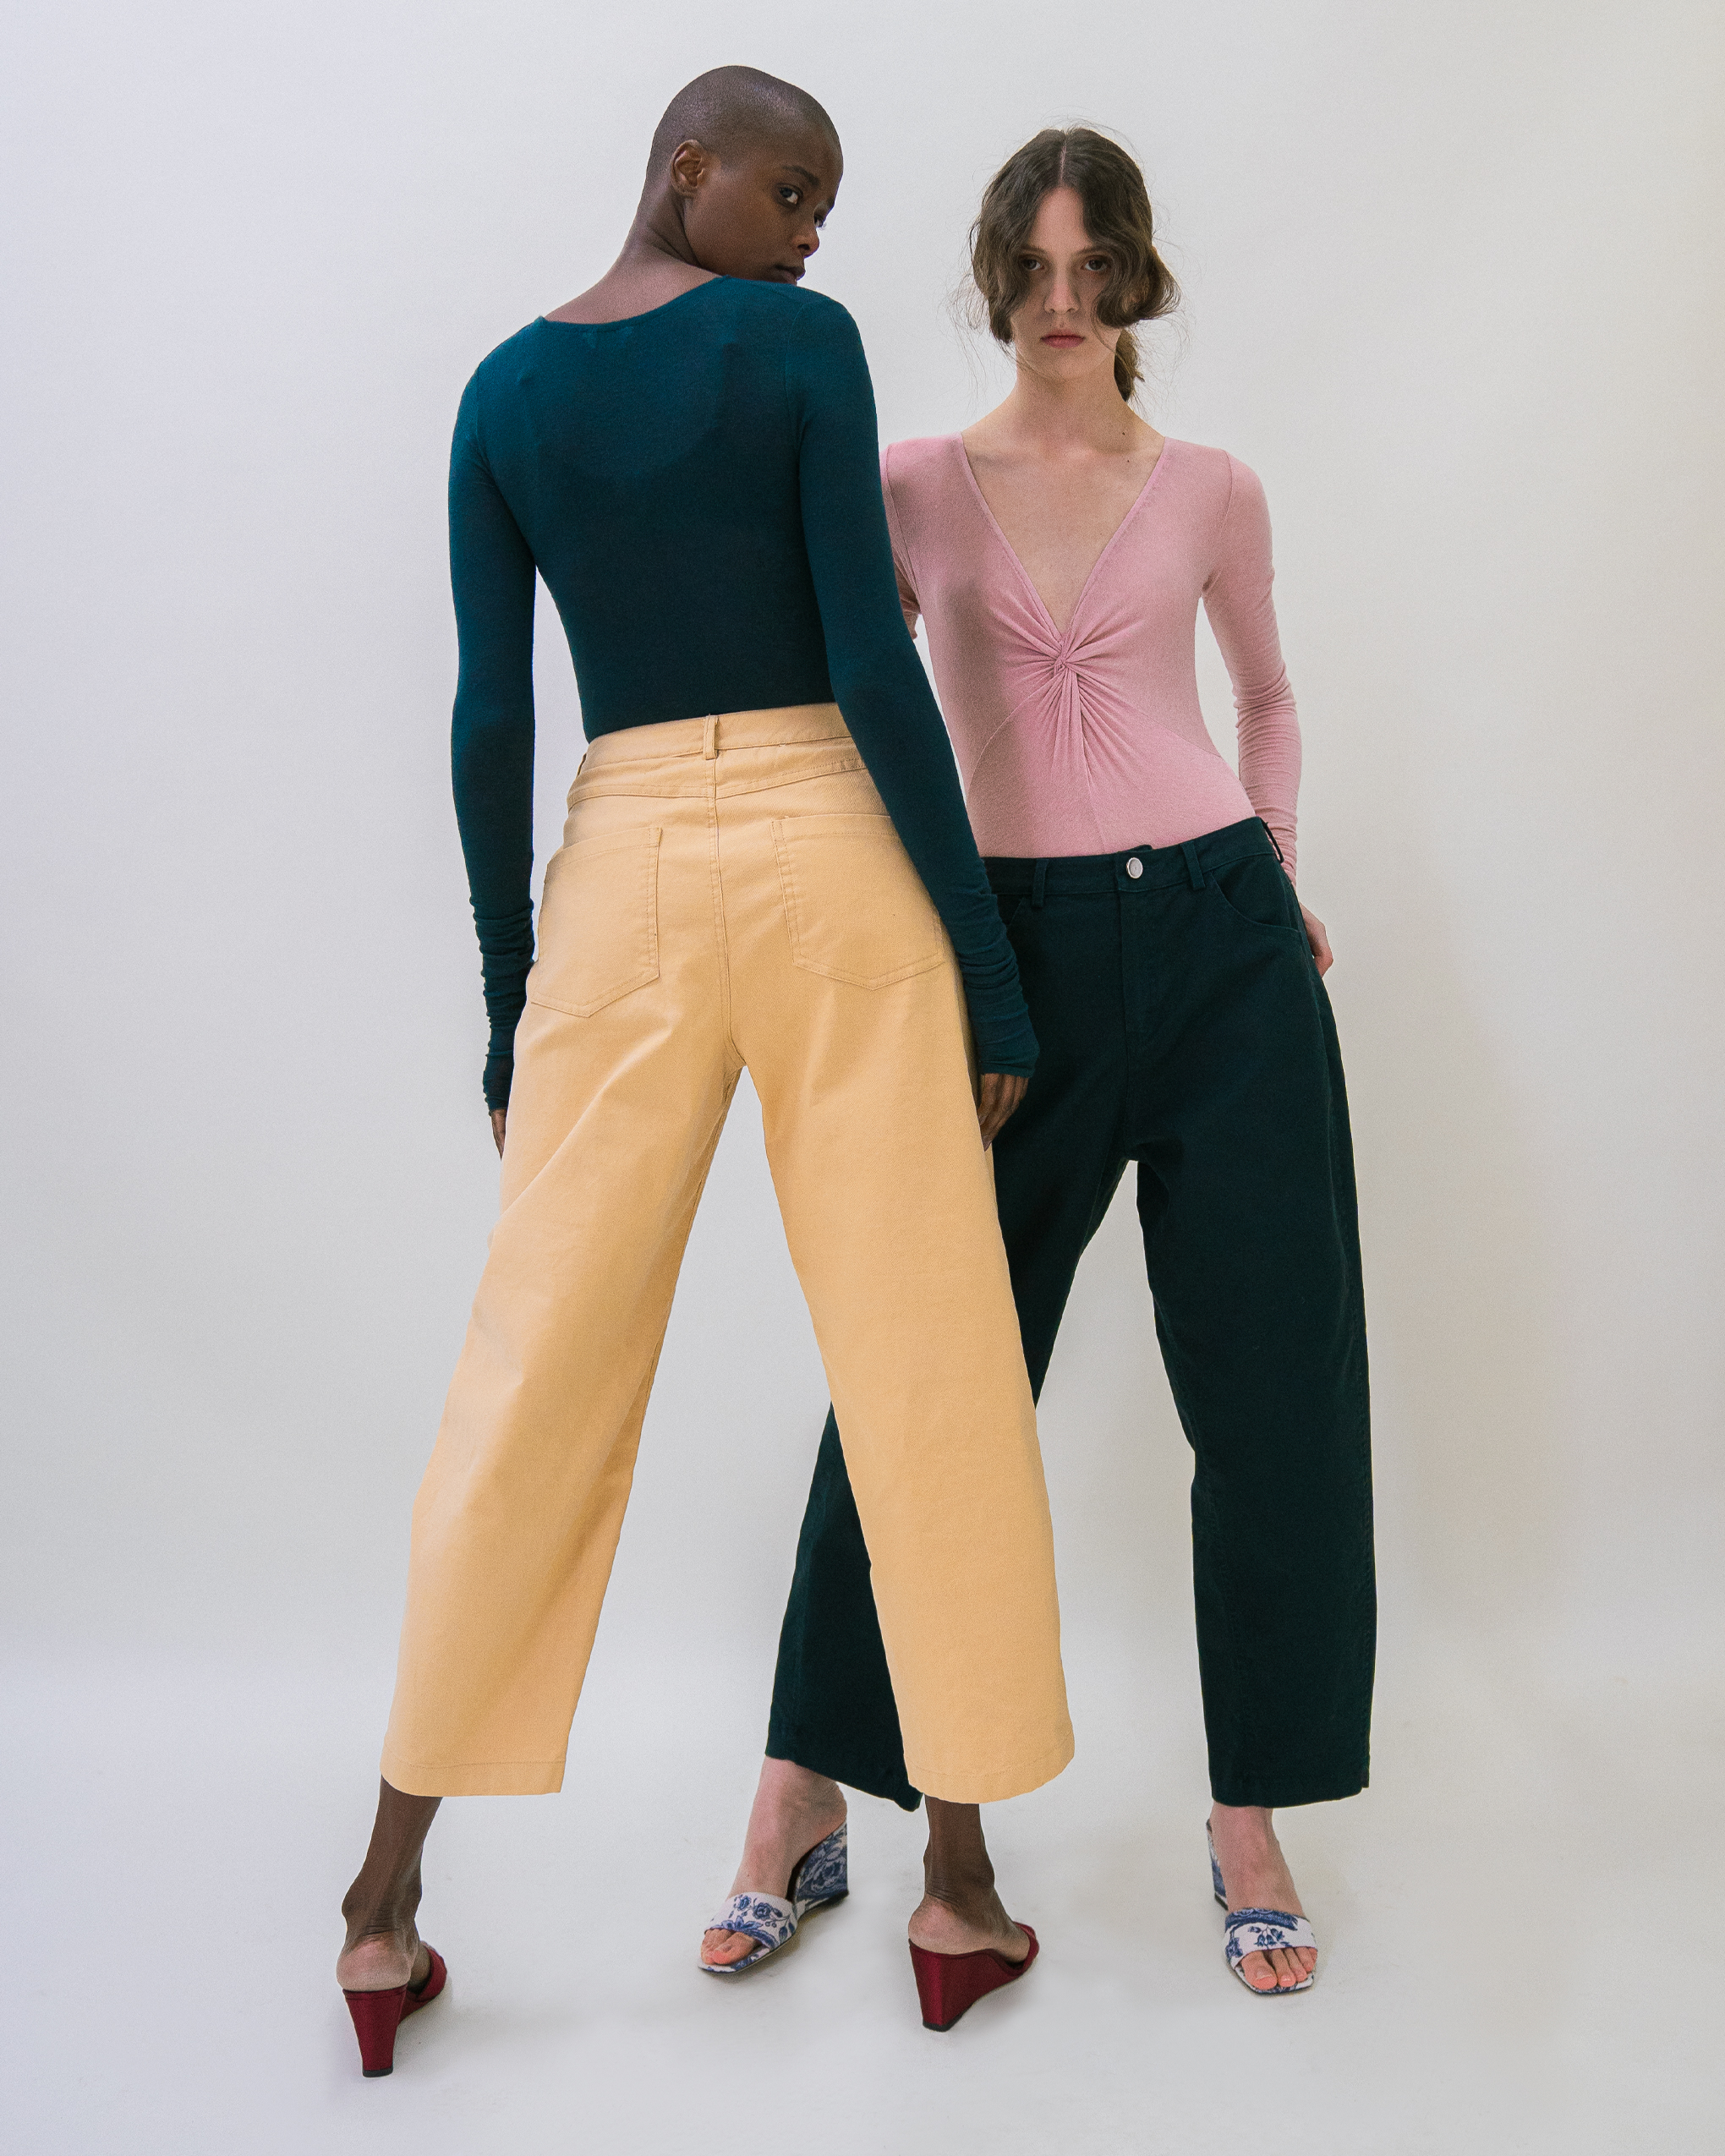 Two women are standing, one woman is wearing teal colour bodysuit and yellow trousers, the other woman is wearing pink bodysuit and teal trousers.